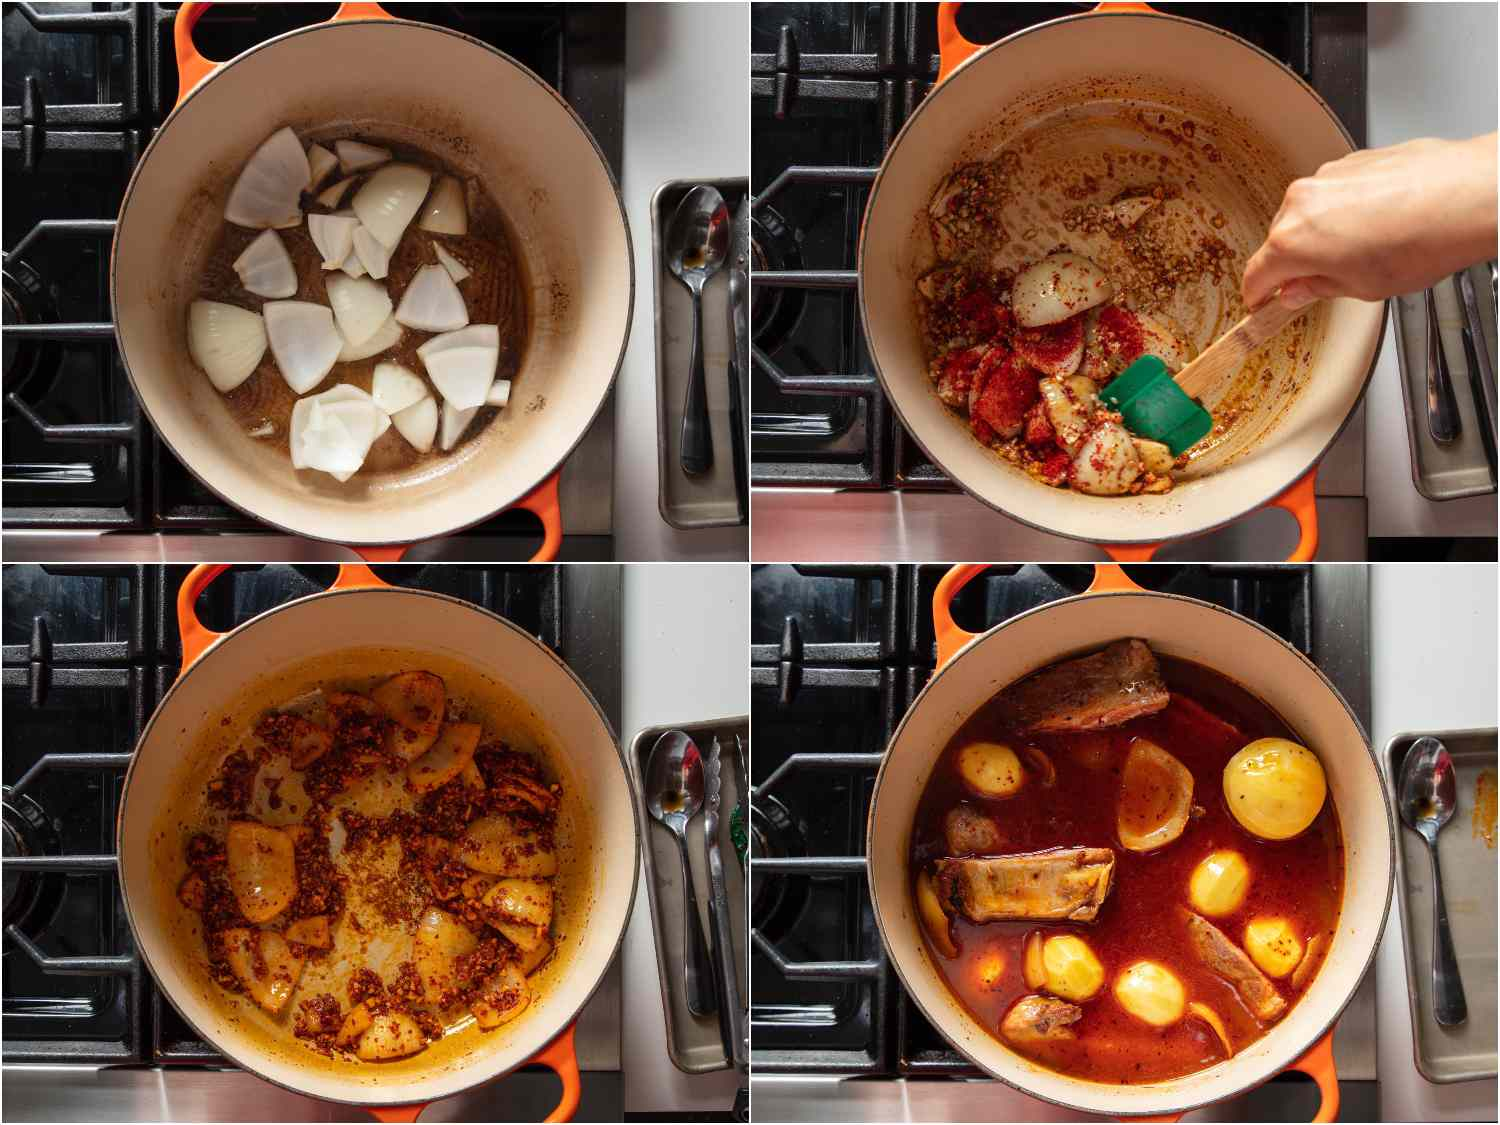 Cooking onions in rendered pork fat and simmering with potatoes and ribs.